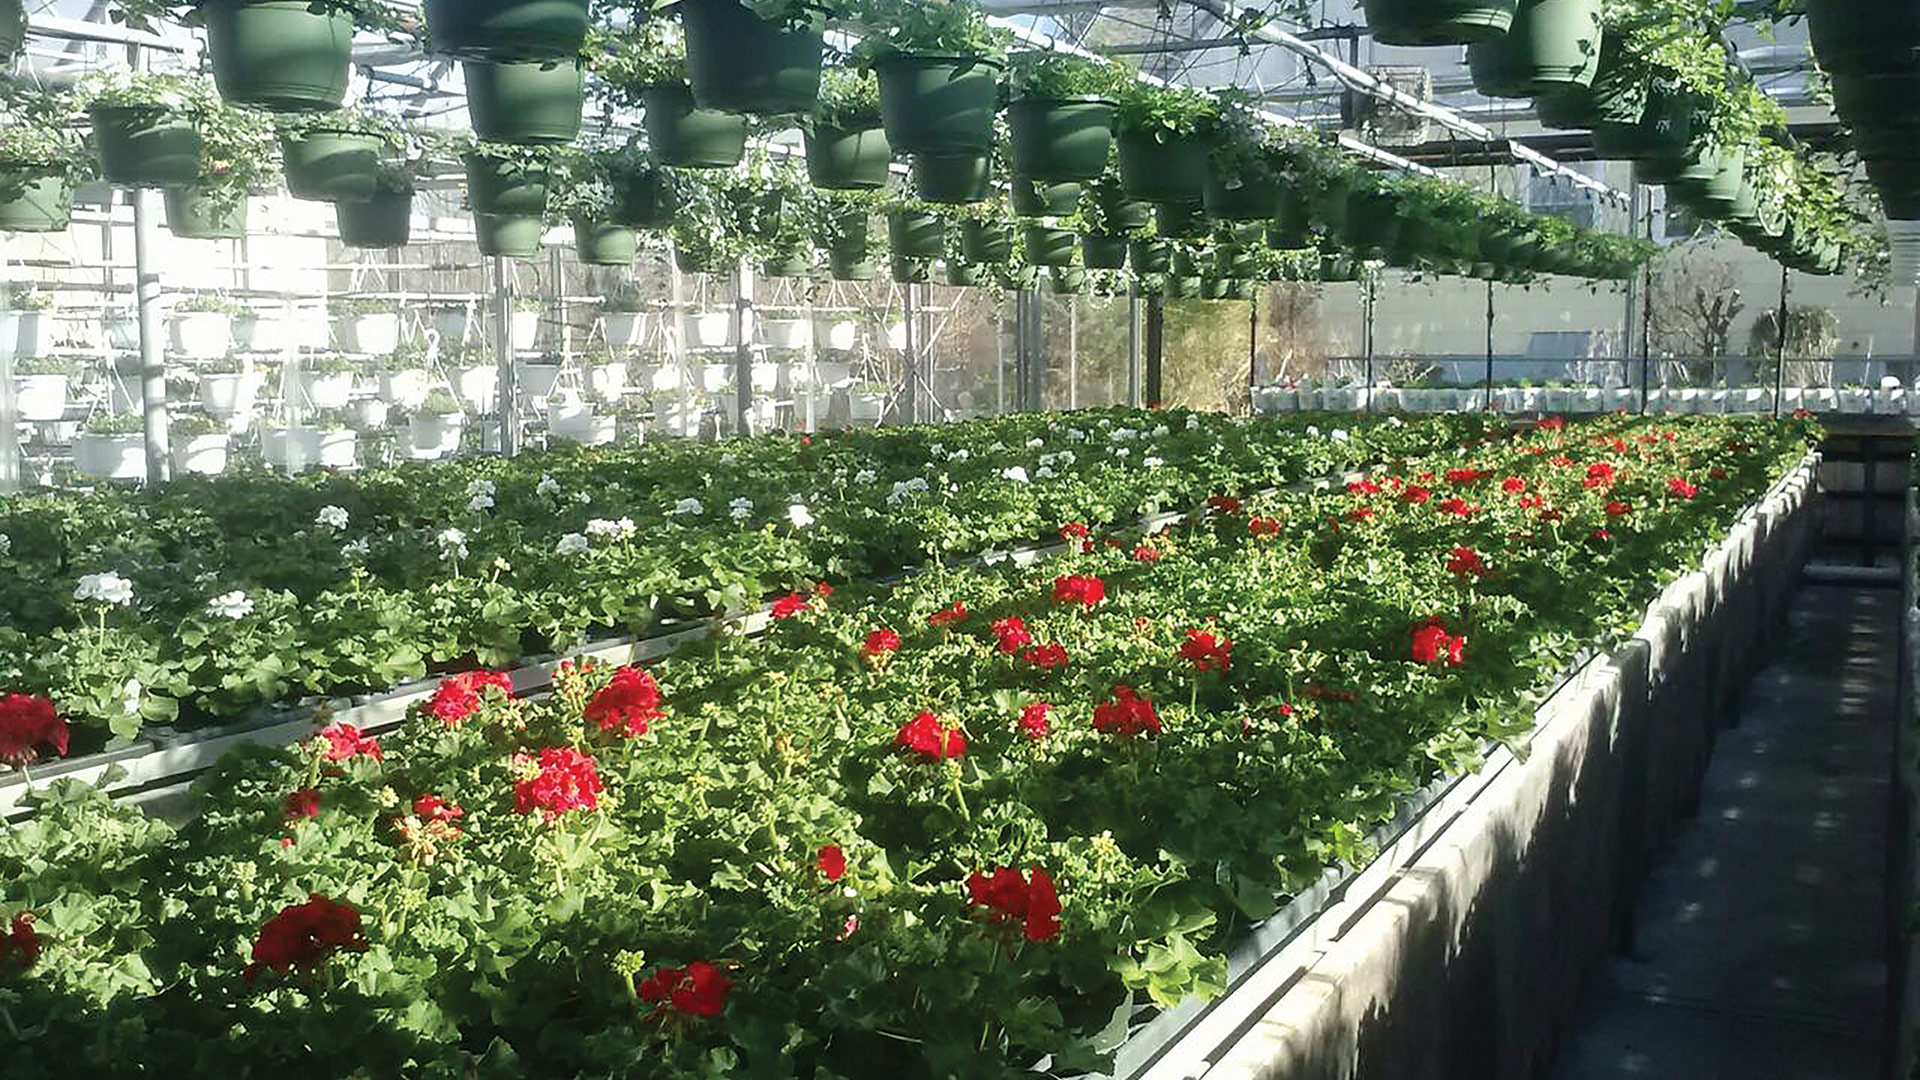 Dave Graziano says his garden center sold out of many popular plants last year.